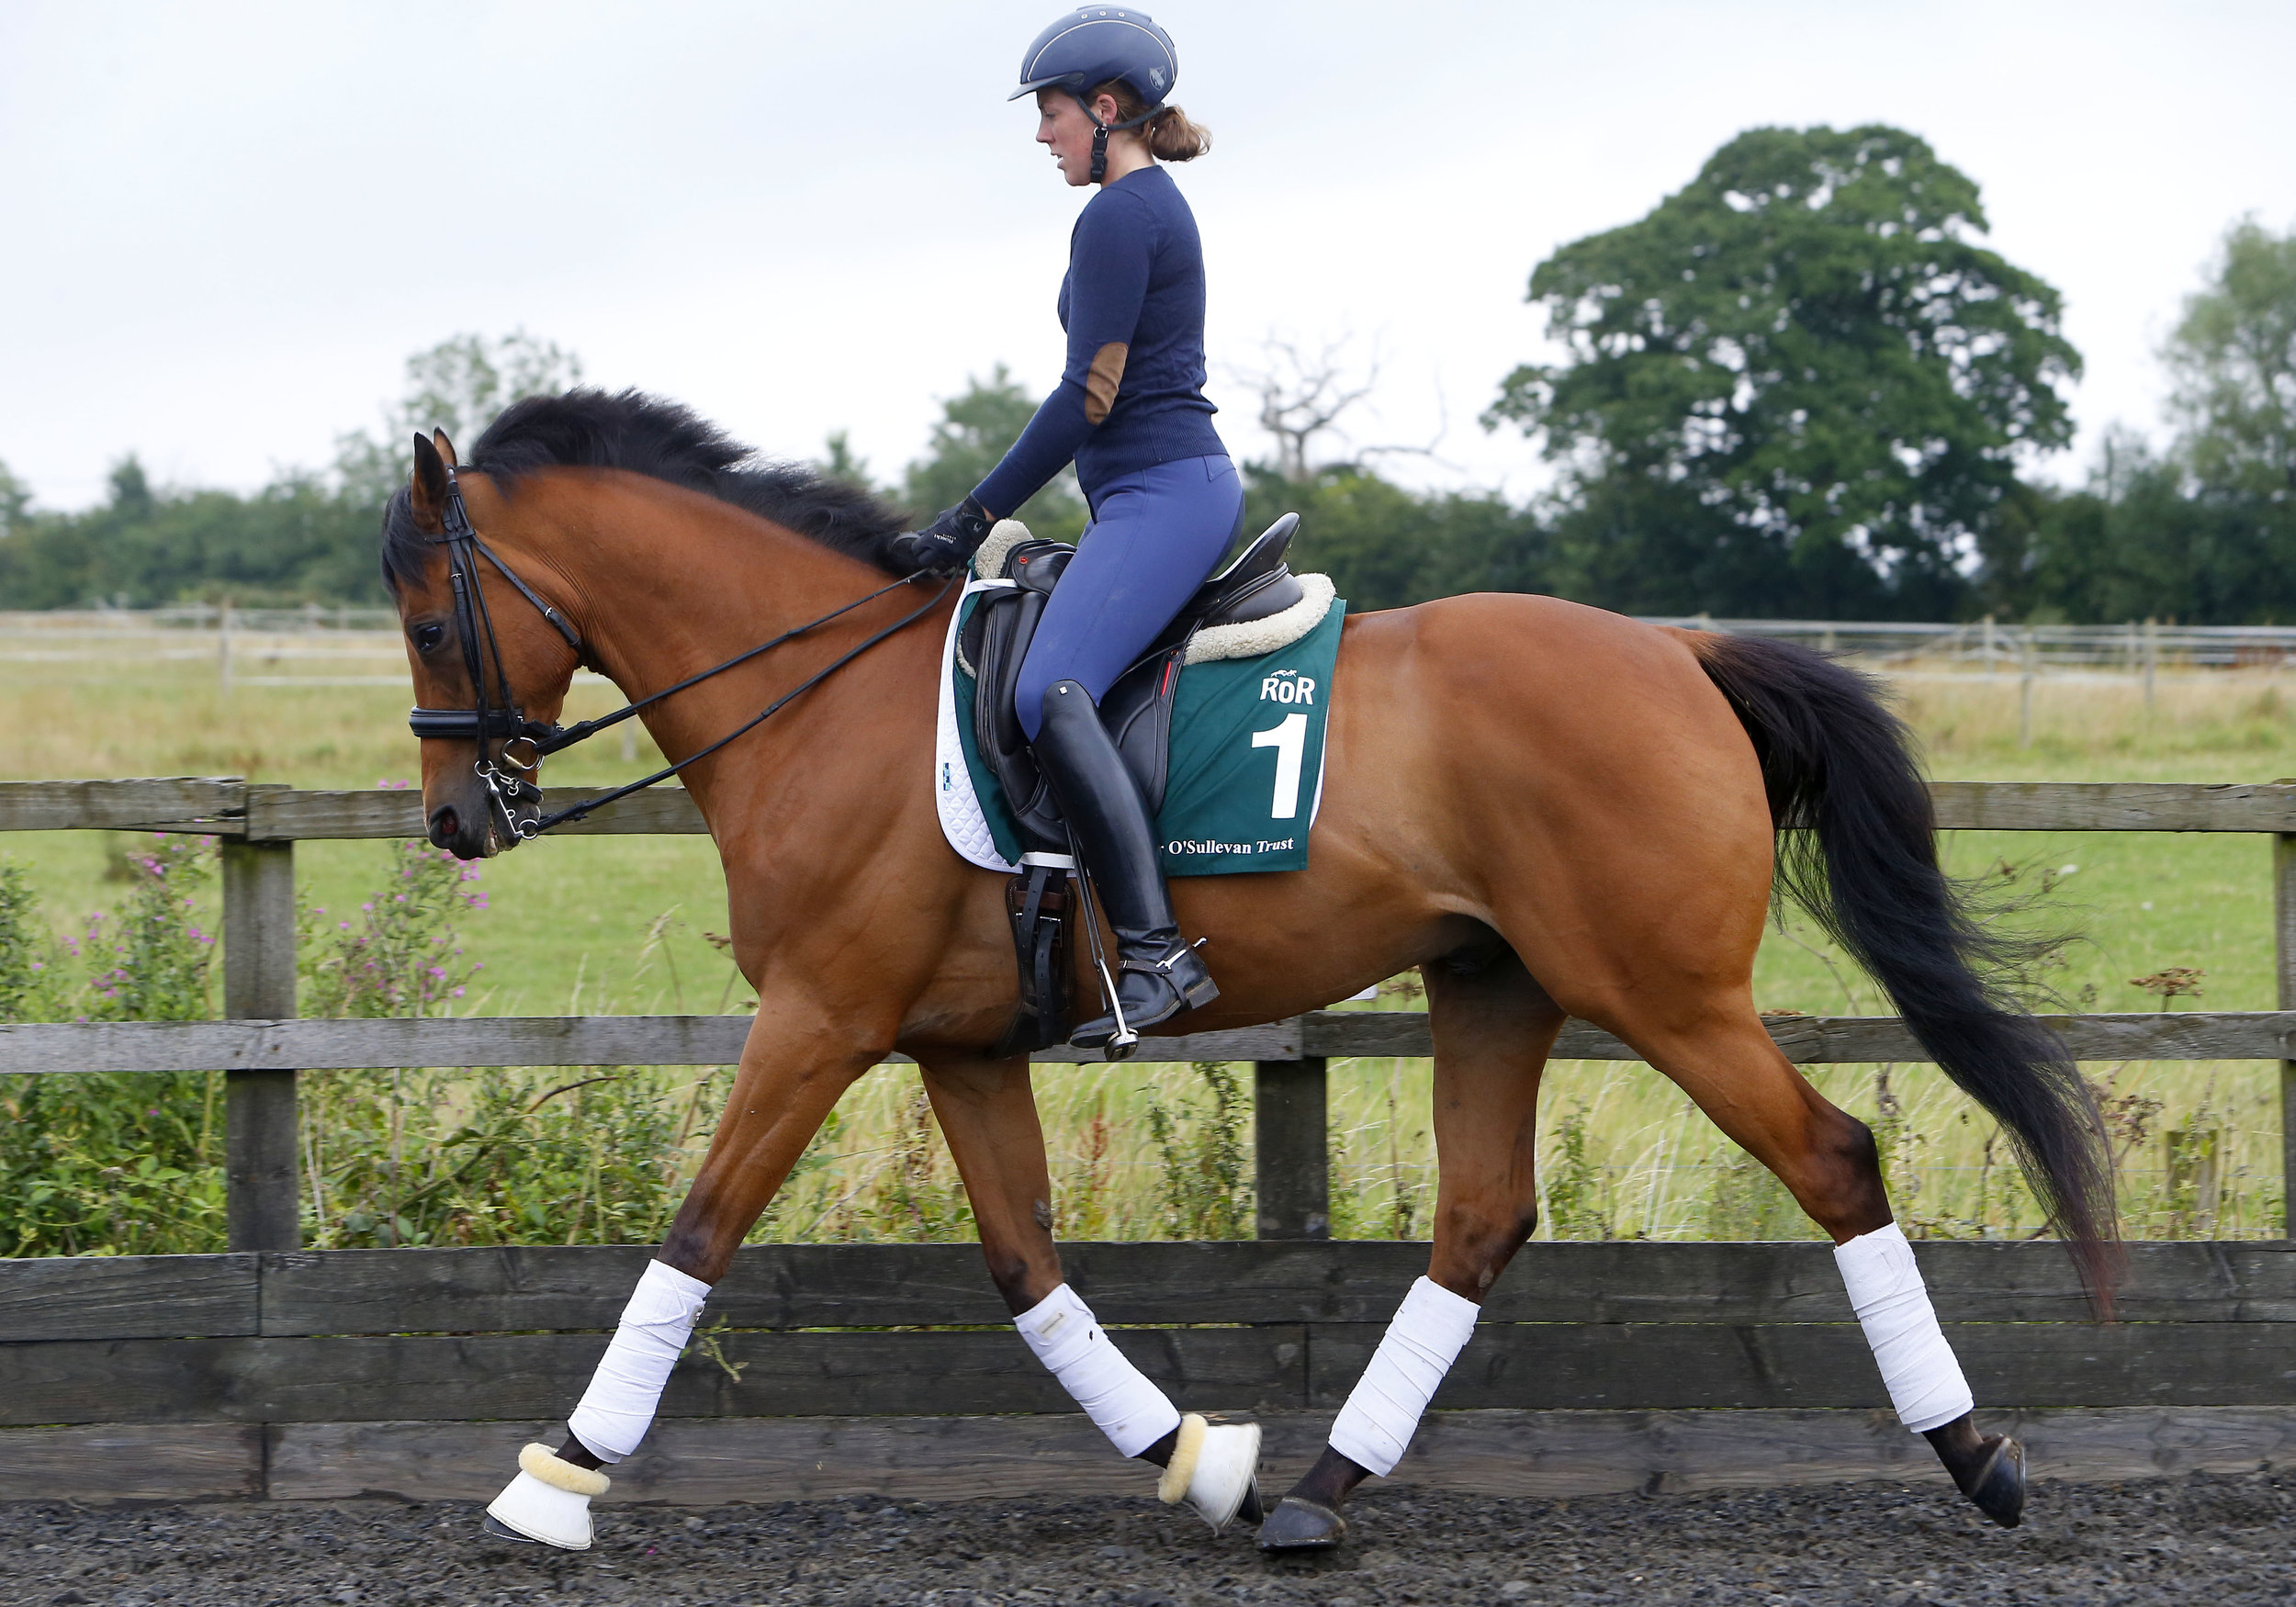 Louise Robson and Quadrille - one of two former racehorses owned by HM The Queen that is set to parade at Ascot on 29 July 2017